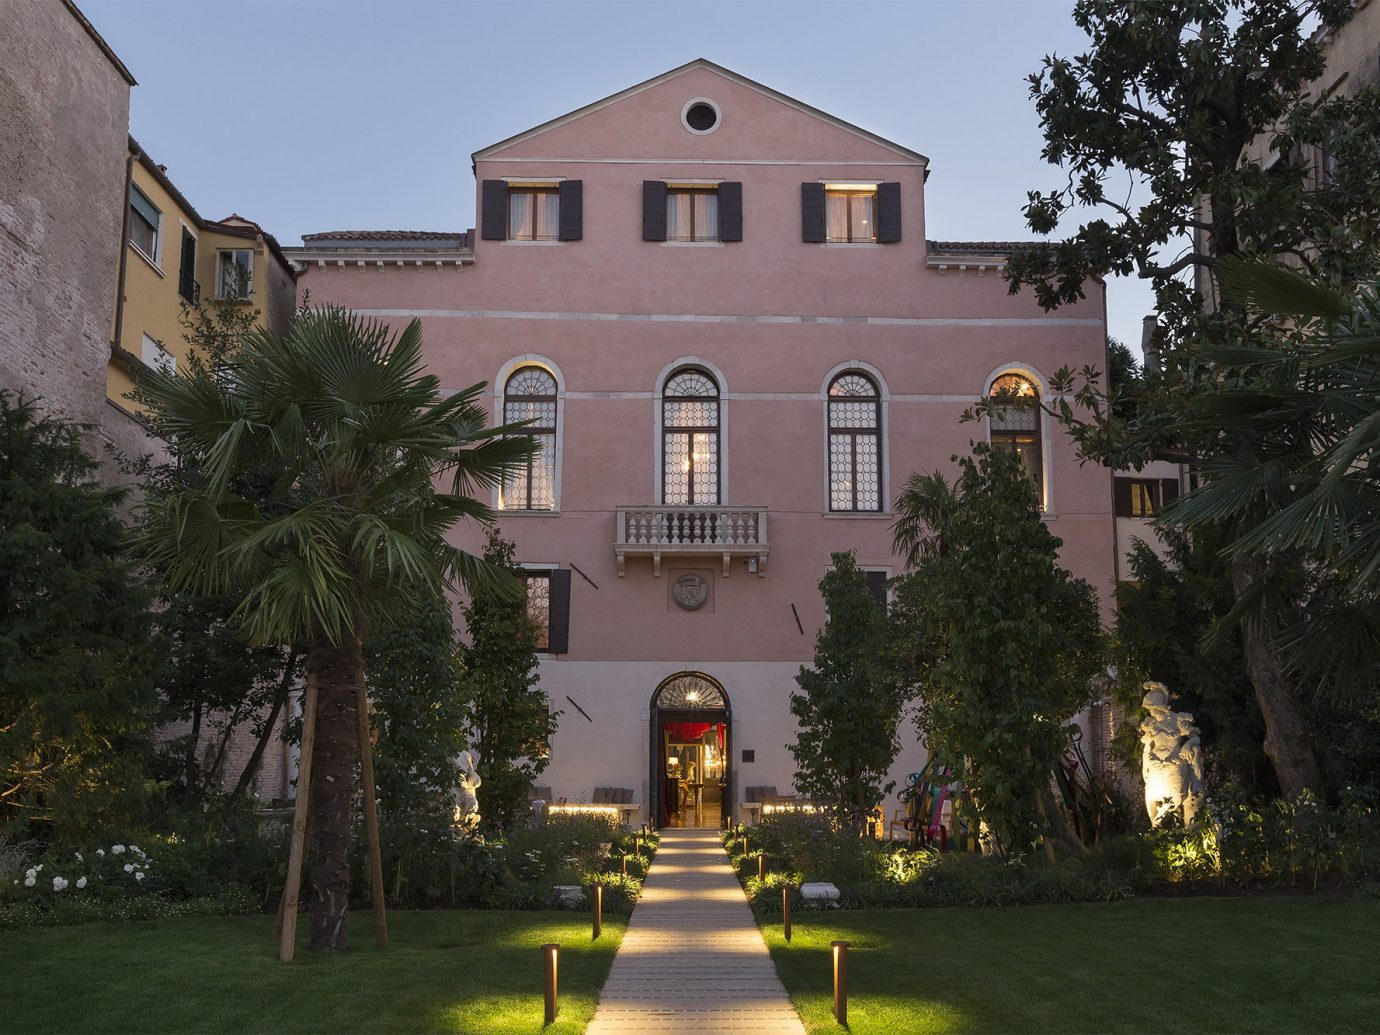 Hotels Italy Luxury Travel Venice mansion estate home property building house Architecture Villa tree residential area real estate lighting facade château evening stately home manor house historic house plant sky medieval architecture window hacienda City landscape lighting